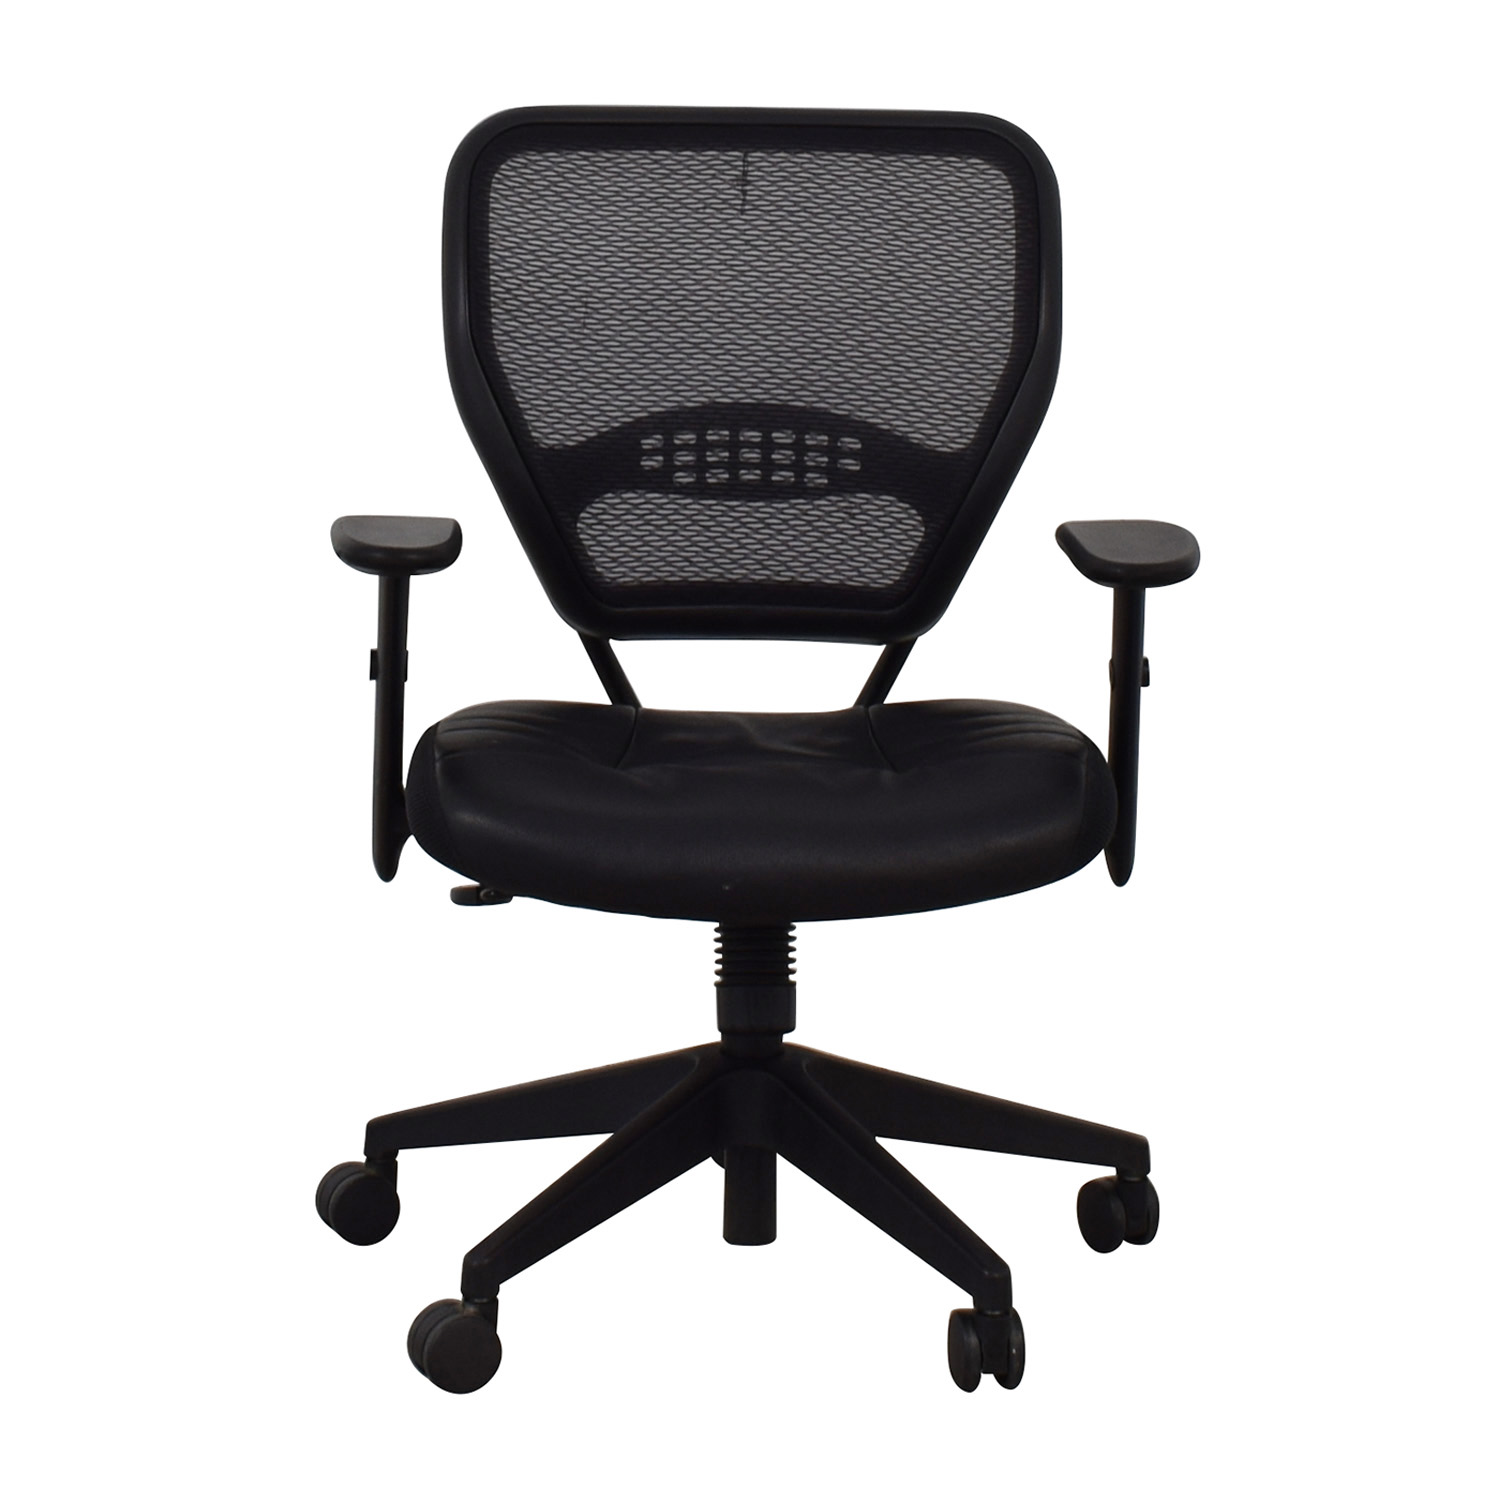 Office Star Office Star Mesh Desk Chair second hand